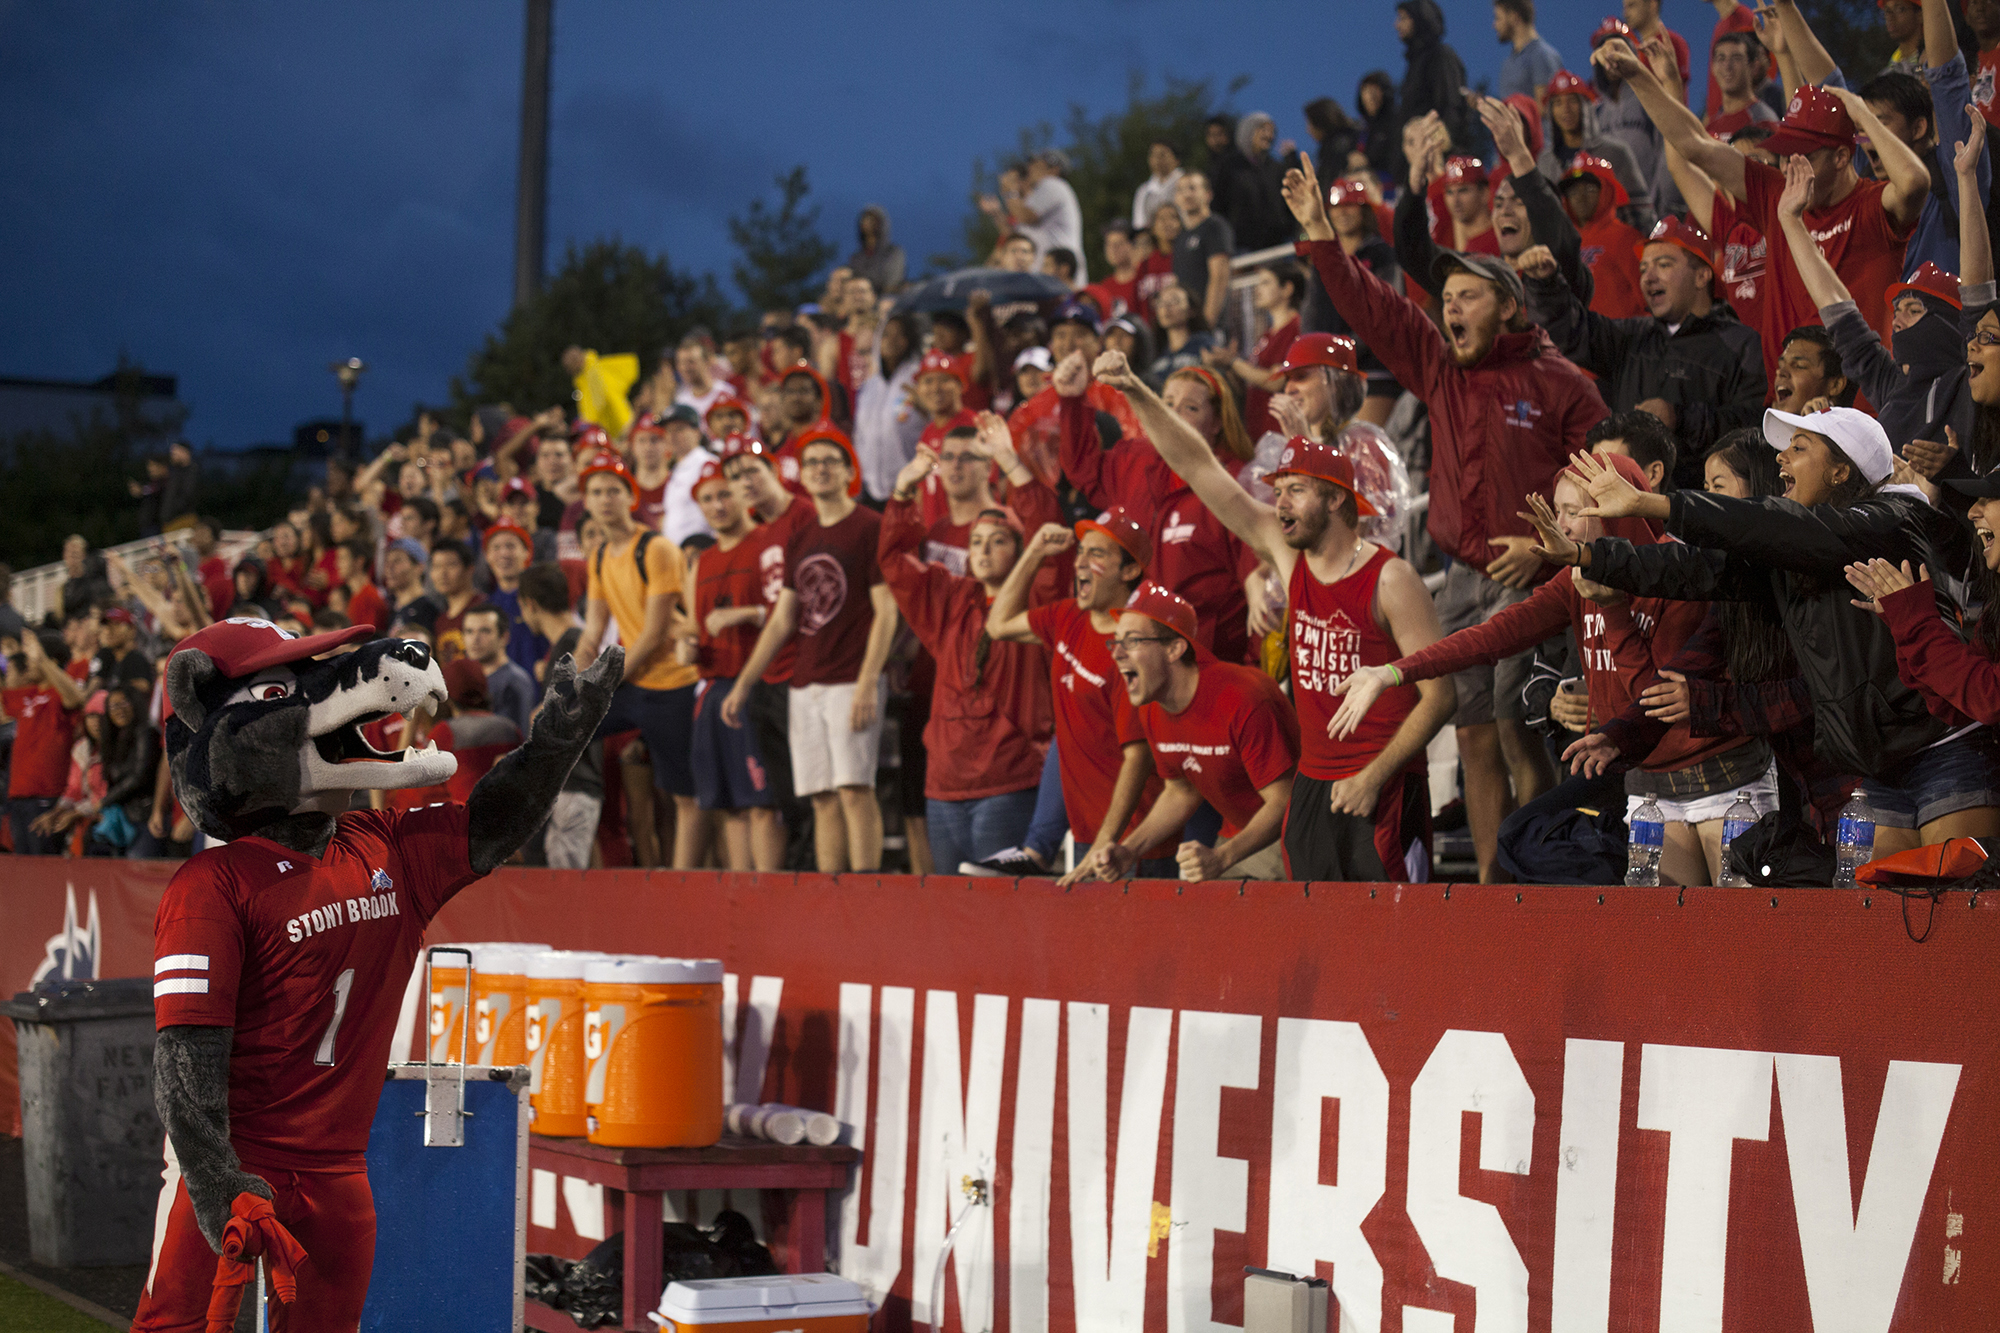 Wolfie trades cheers for shirts at Stony Brook's first football game of the 2015 season versus the Central Connecticut Blue Devils on Sept. 12, 2015 at Kenneth P. LaValle stadium. CHRISTOPHER CAMERON/THE STATESMAN